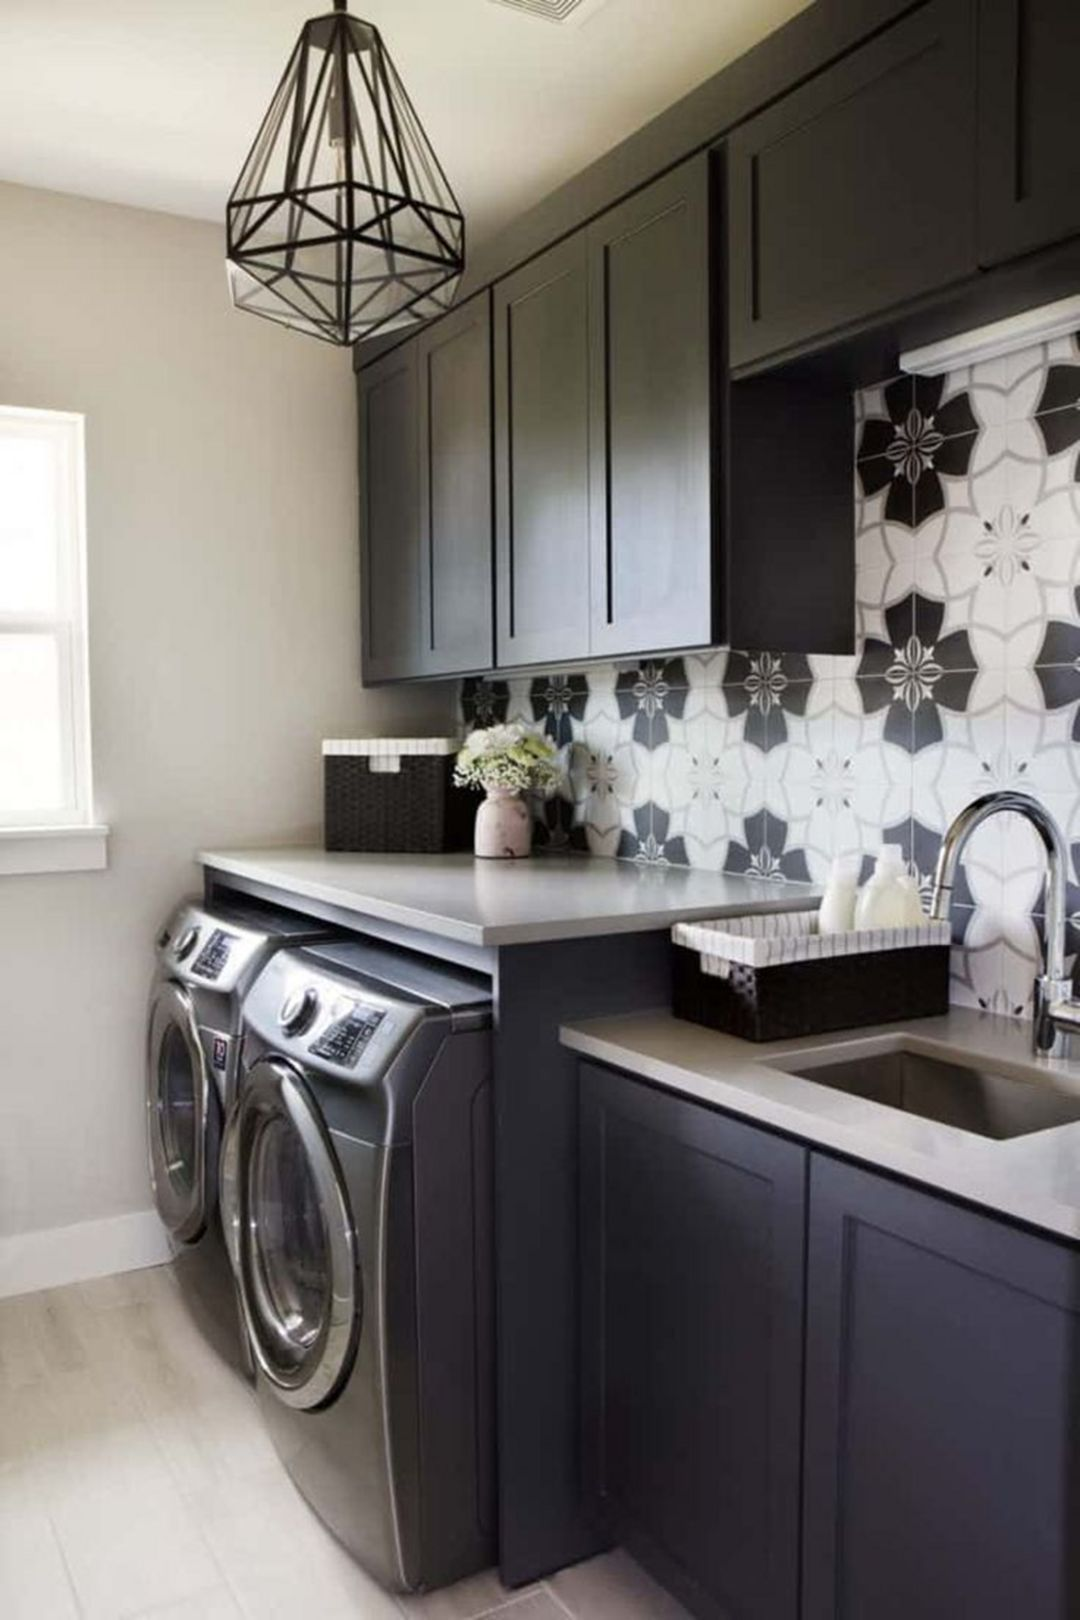 Photo of 10 Awesome Laundry Room Organization Ideas for a Comfortable and Neat Nuance